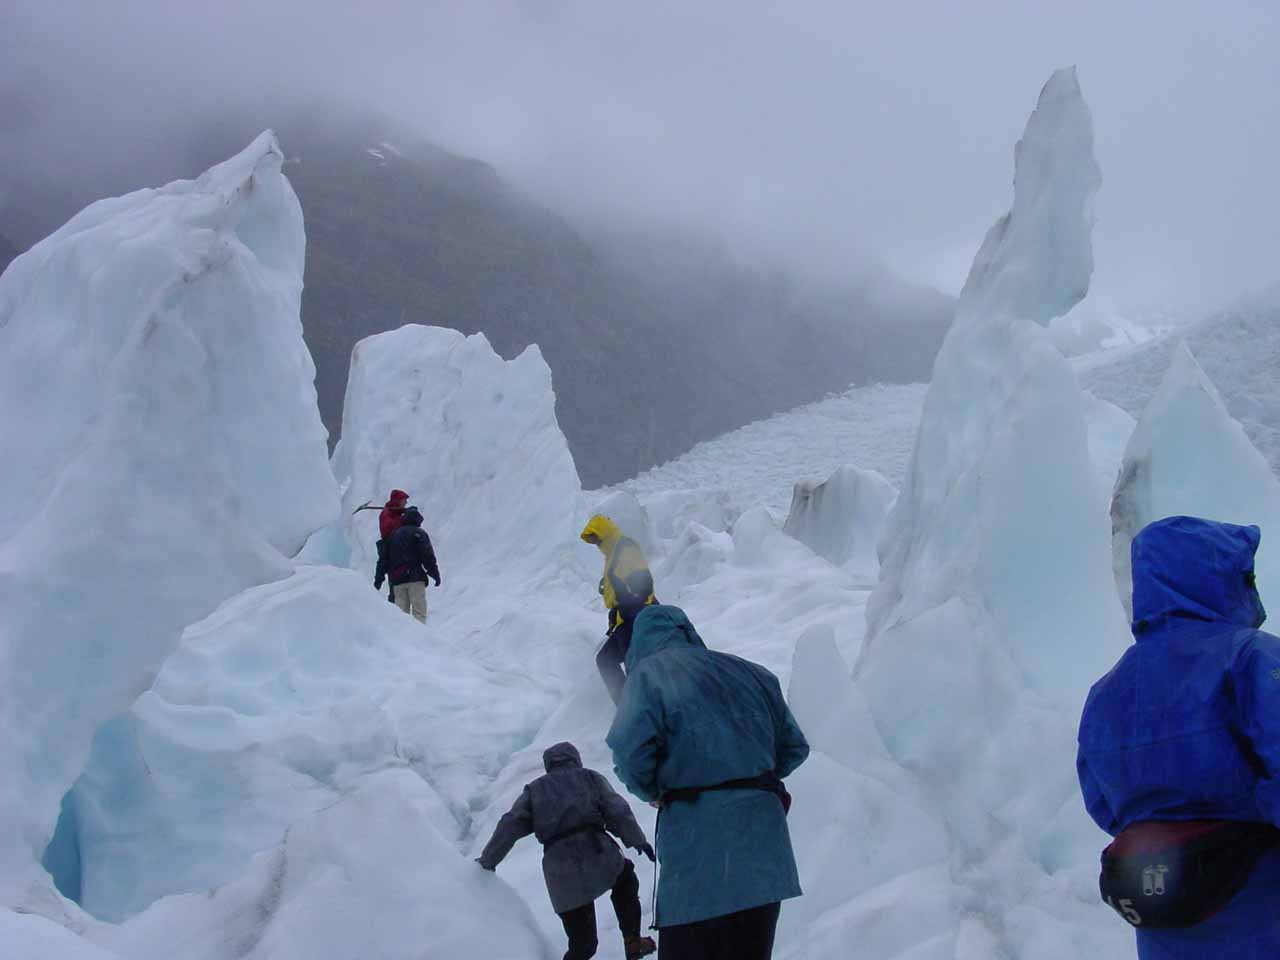 When we left Hokitika, we made a late two-hour drive to Franz Josef Glacier township where we did a glacier walk the next day